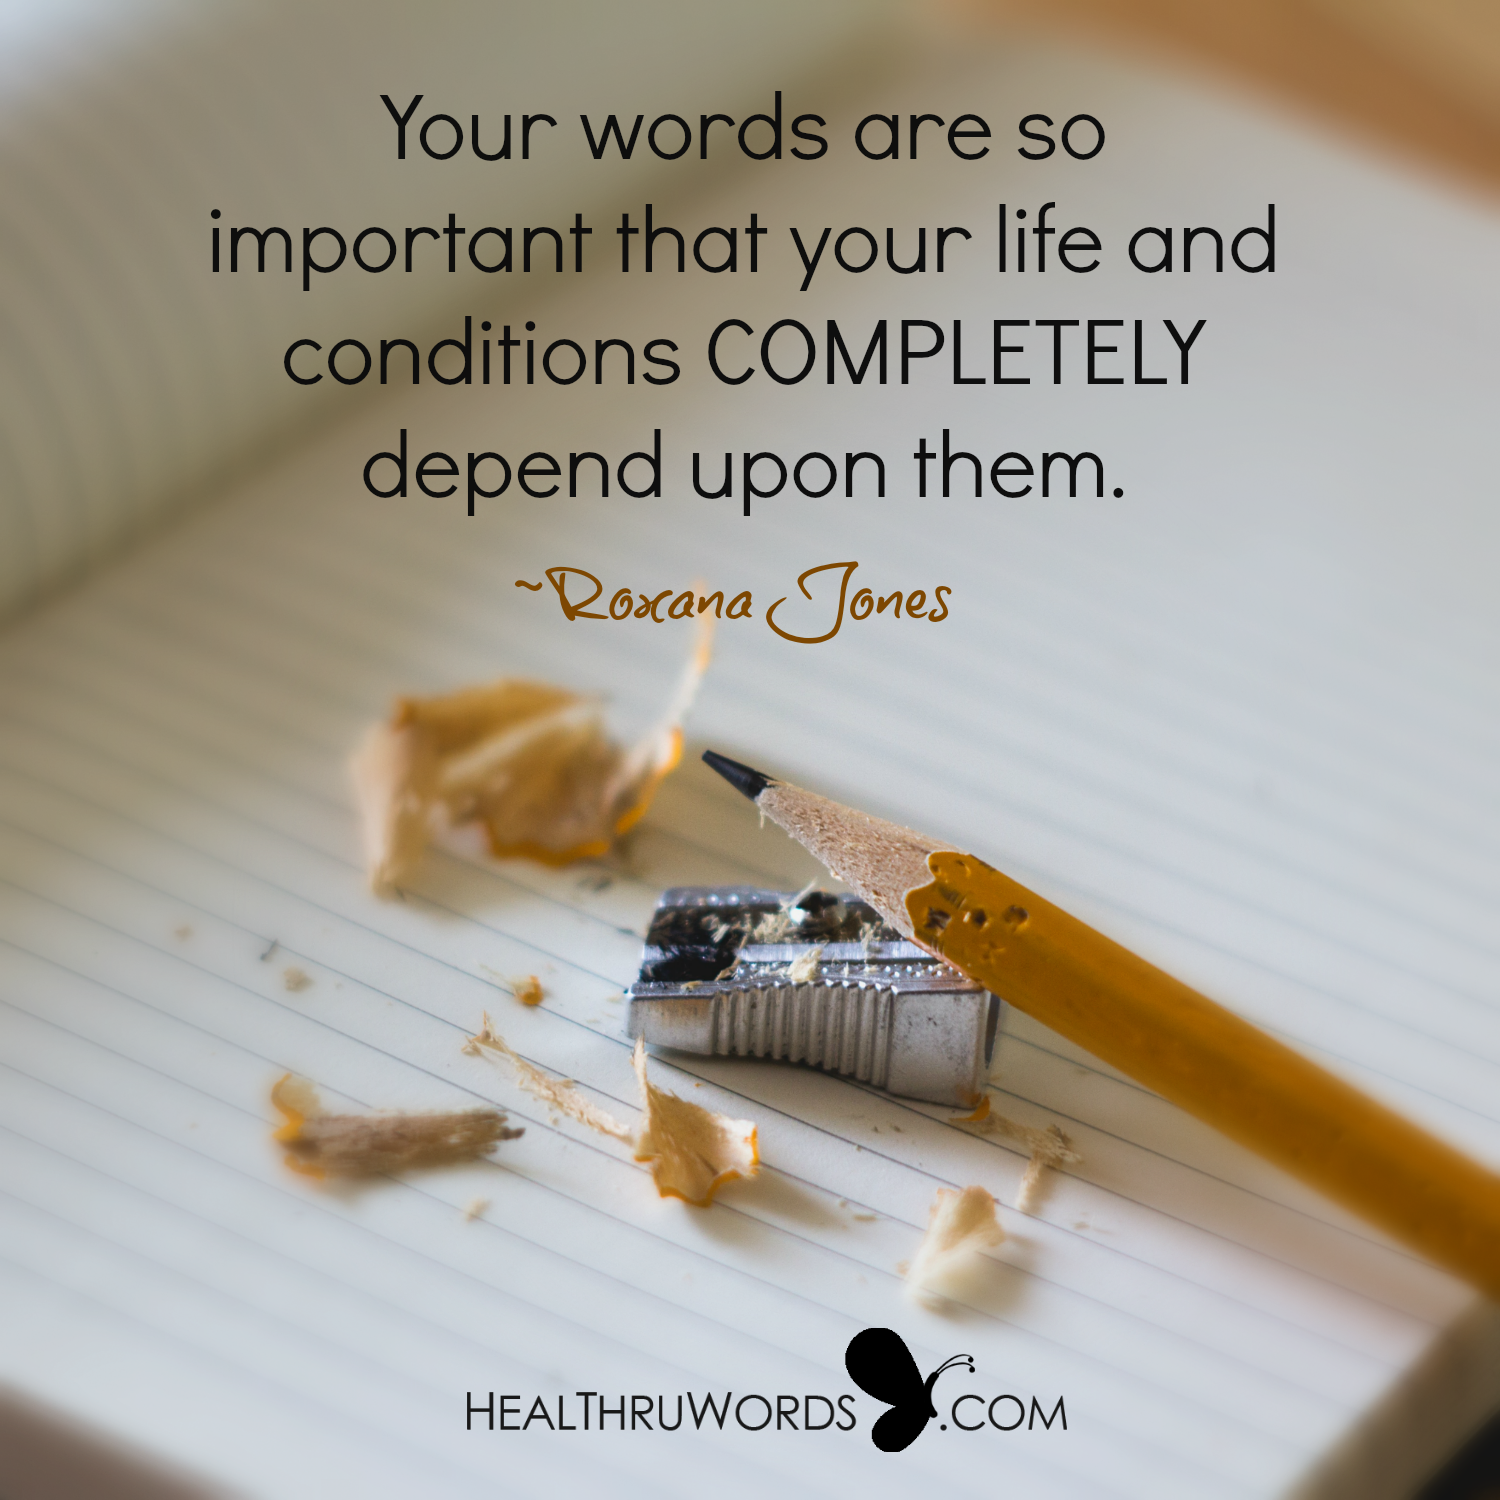 Inspirational Image: The Importance of your Words